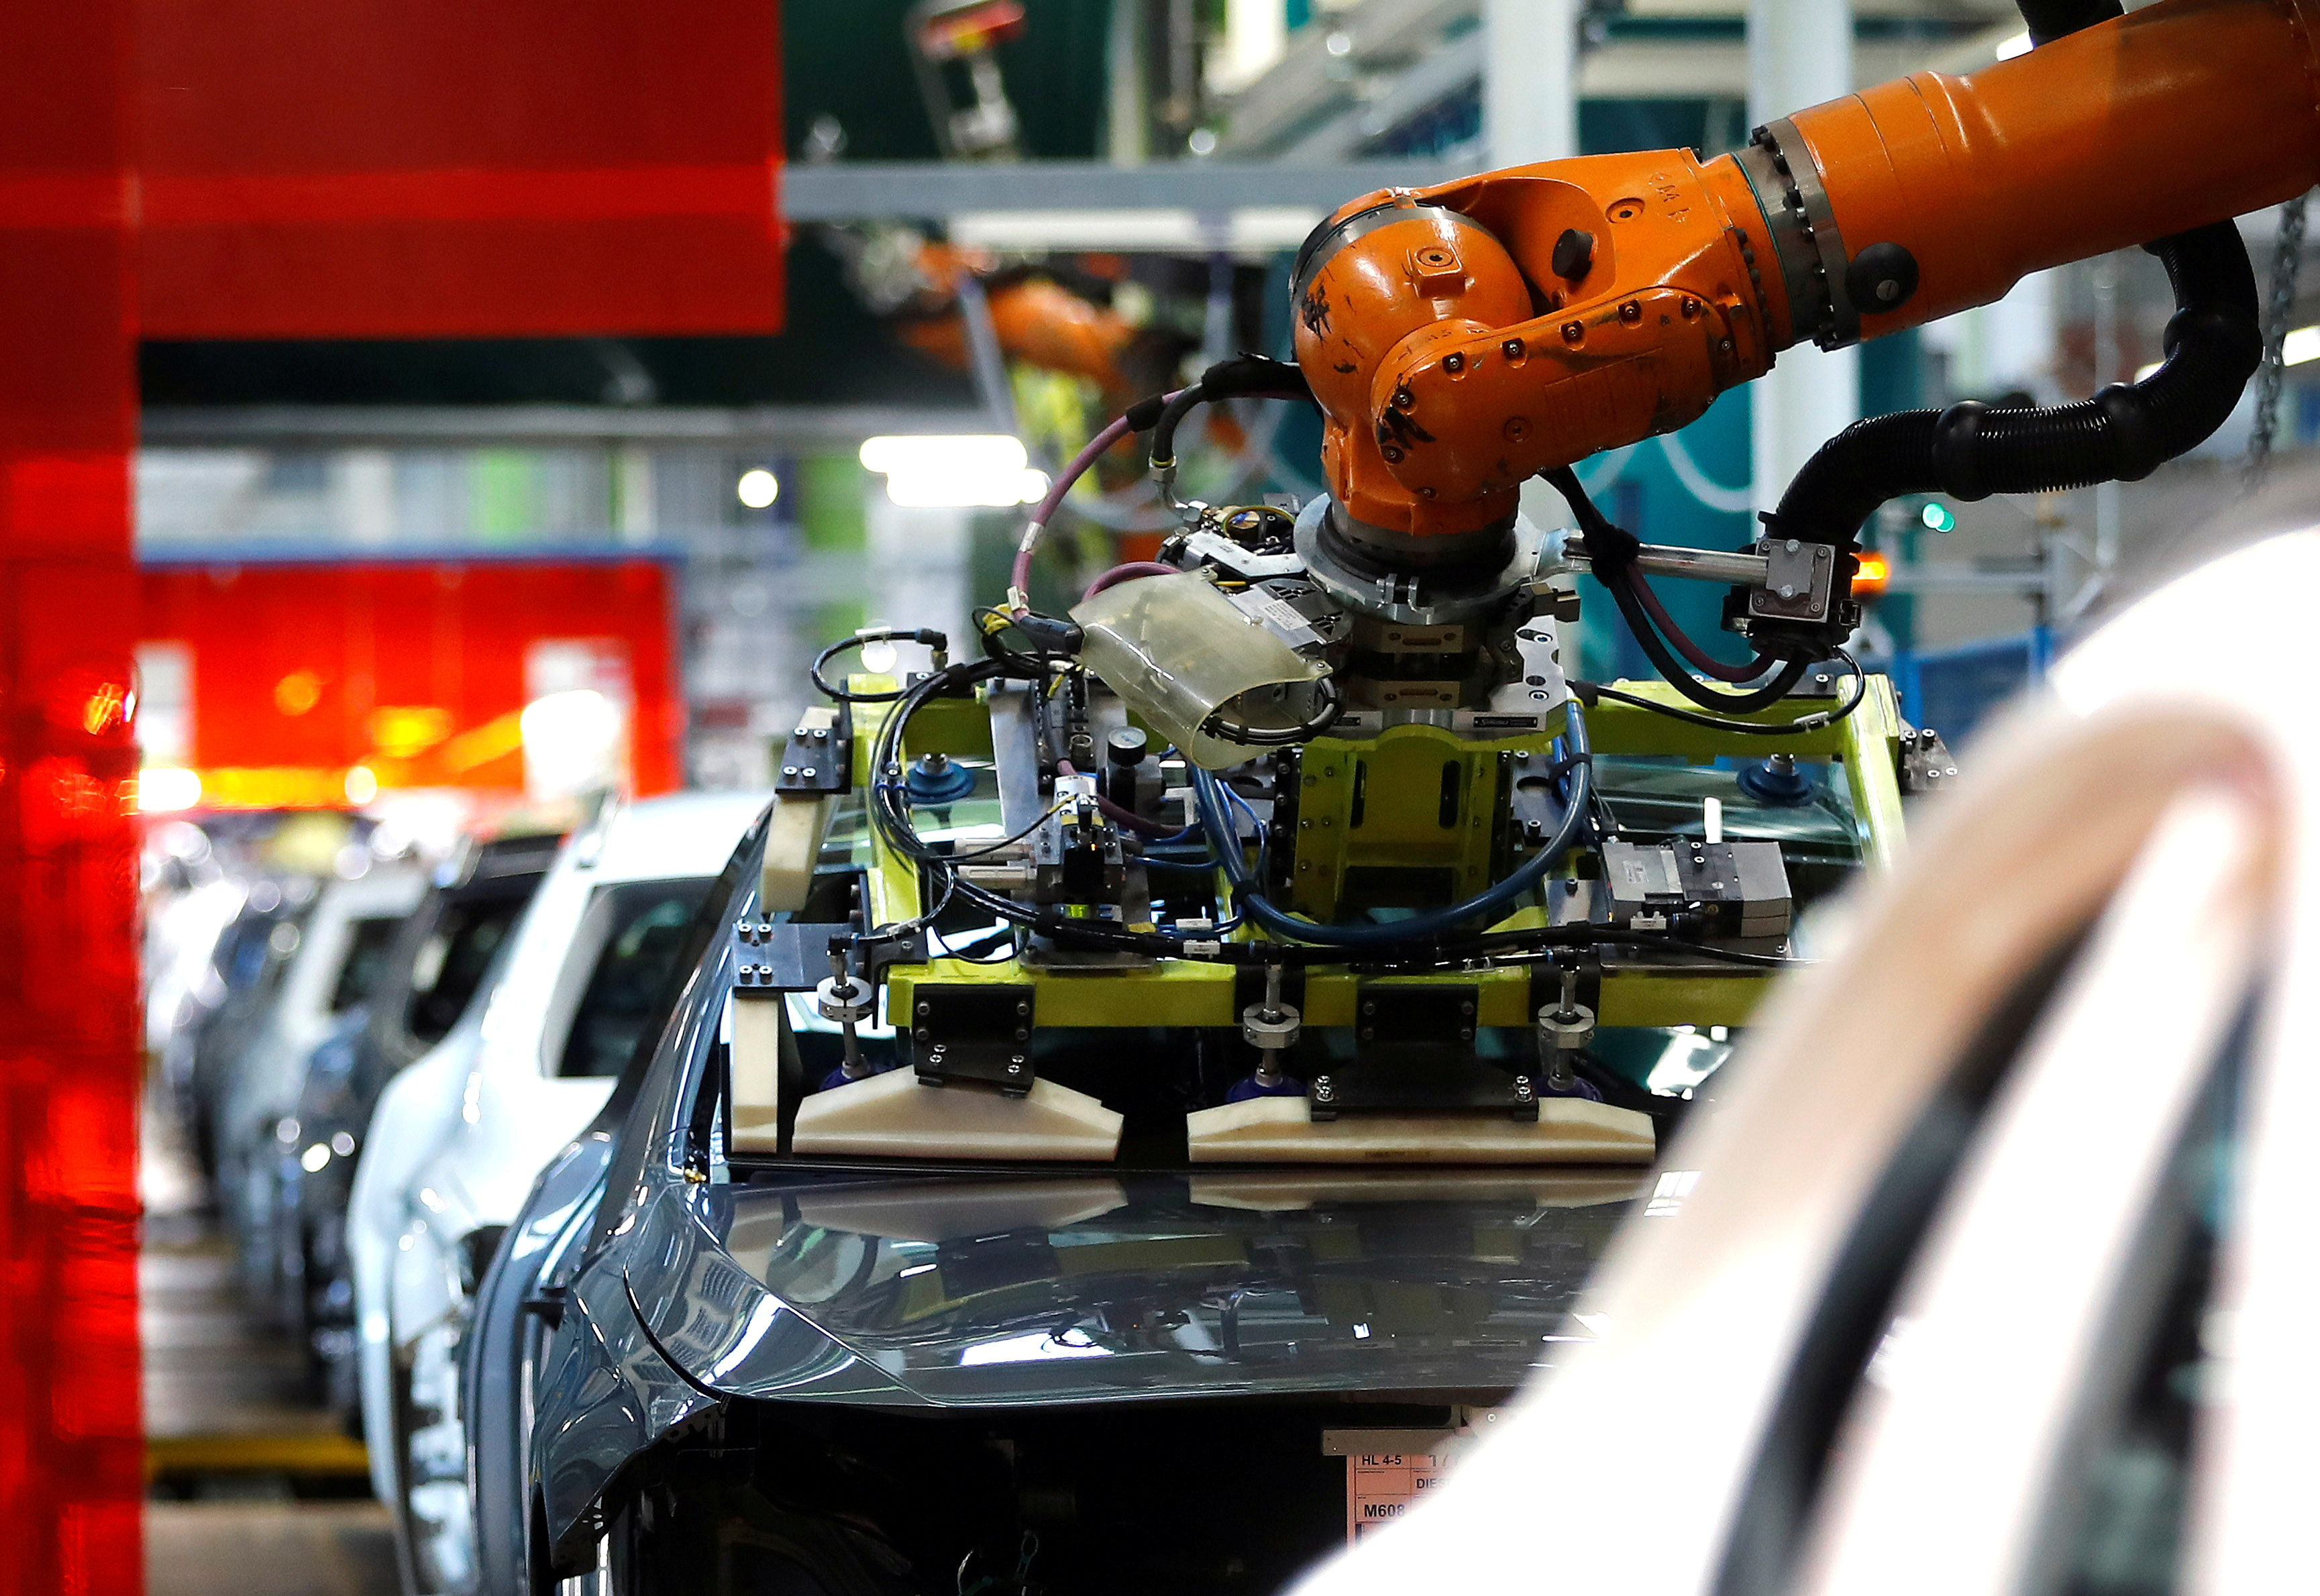 A robot engineered by Kuka adjusts a windscreen in a fully automated process on a model of the A-class production line of German car manufacturer Mercedes Benz at the Daimler factory in Rastatt, Germany, February 4, 2019. REUTERS/Kai Pfaffenbach